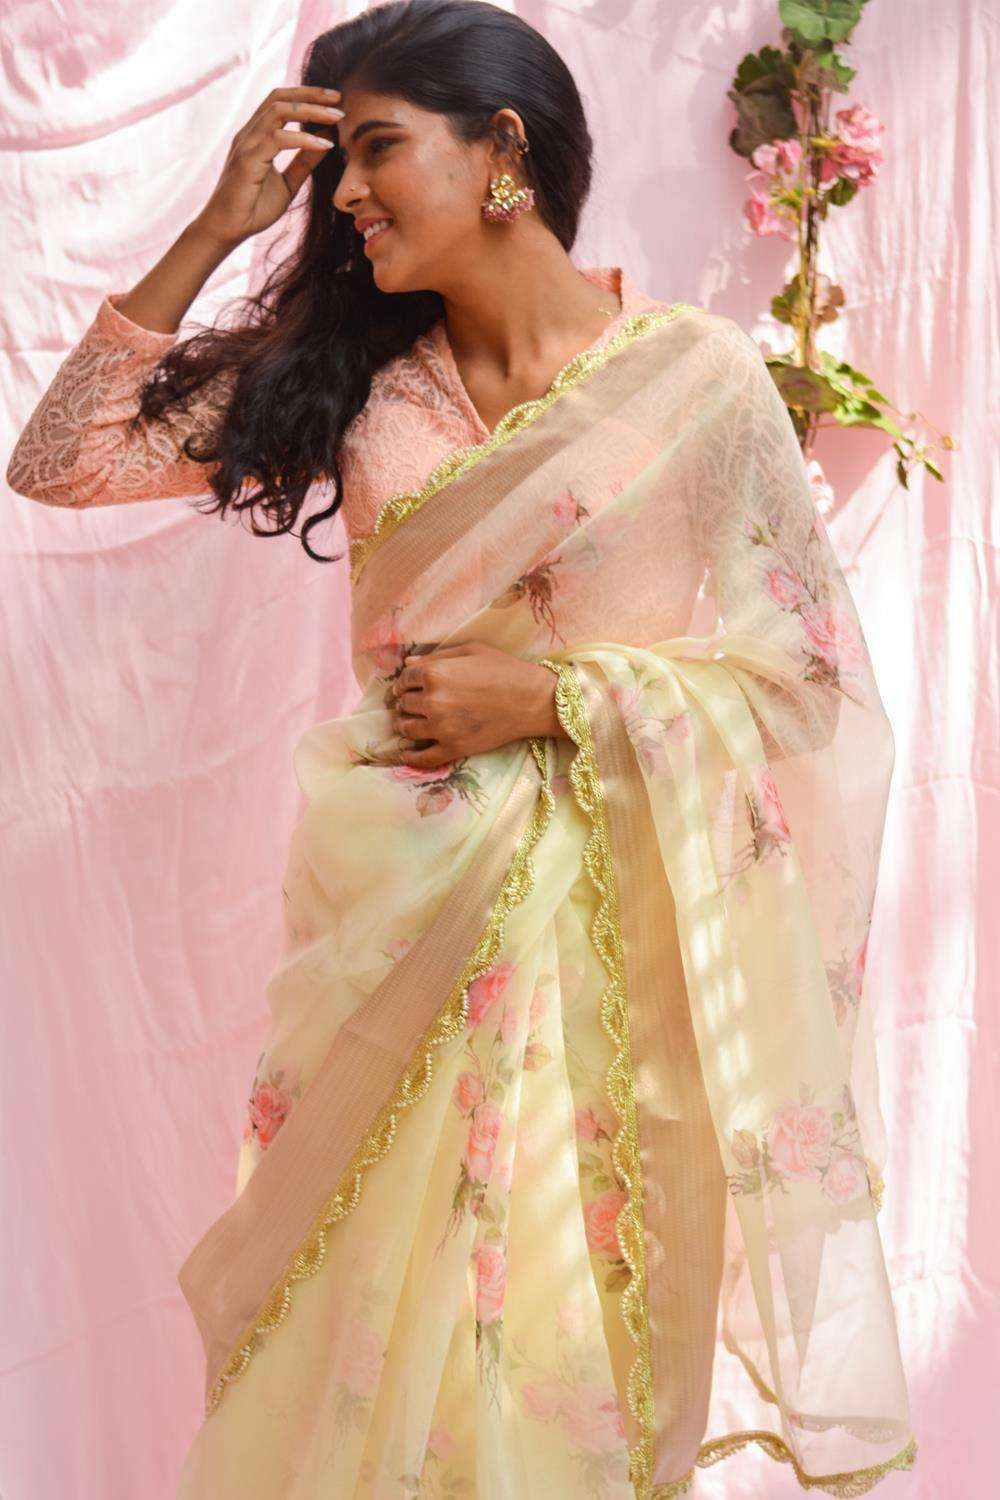 Lemon yellow floral printed organza saree with tissue border and scallop edging - House of Blouse